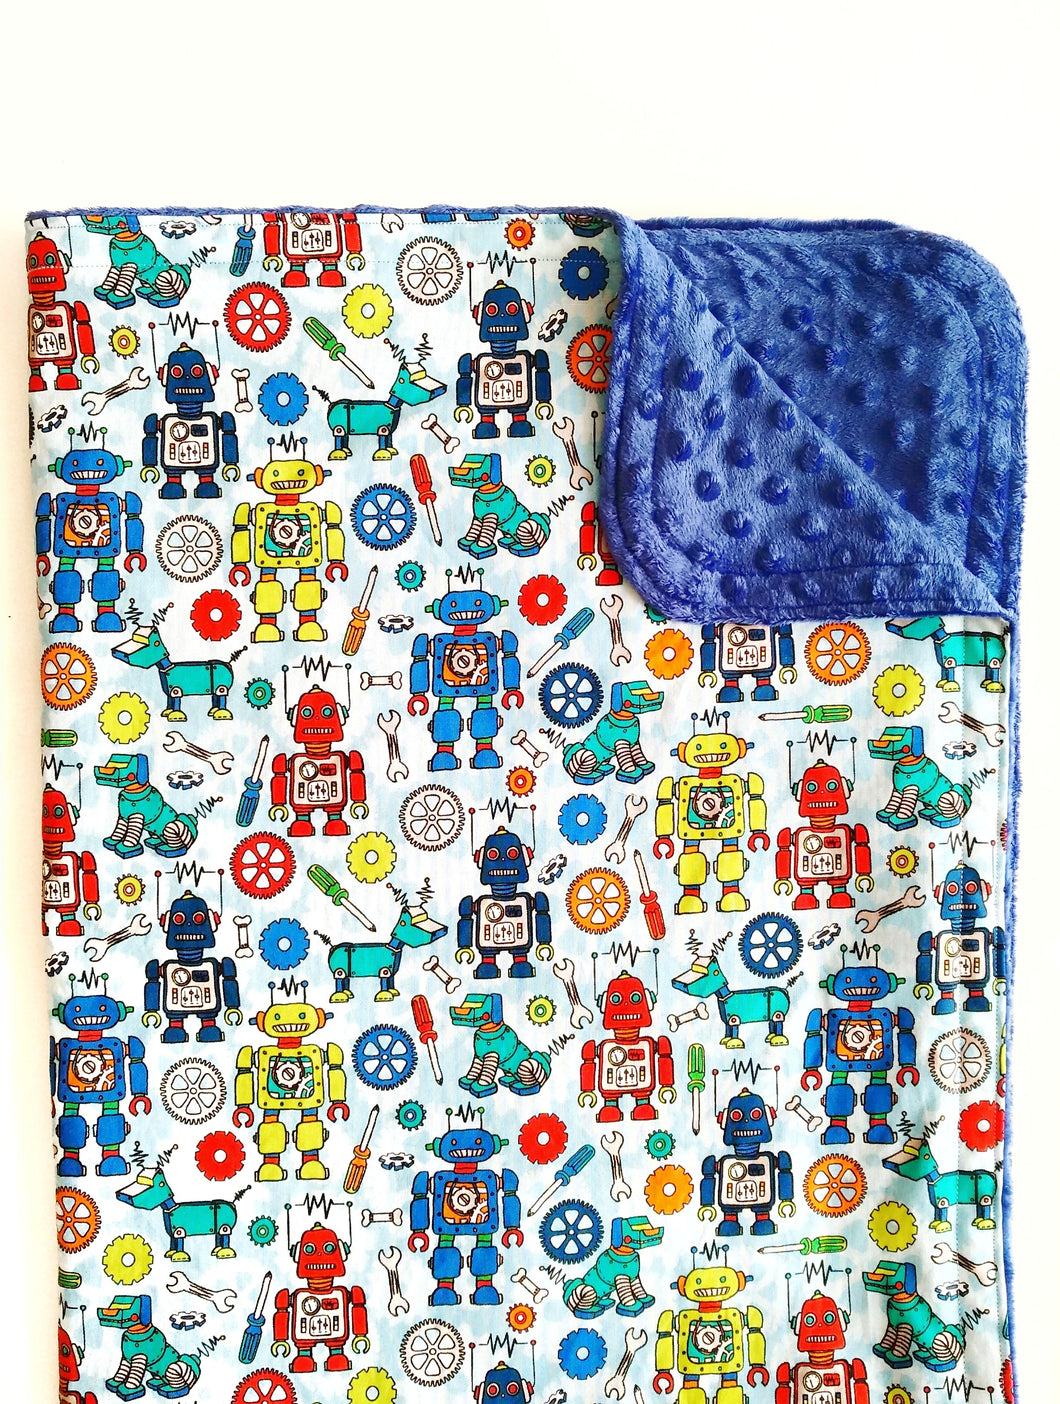 ROBOTS Cloud Blanket